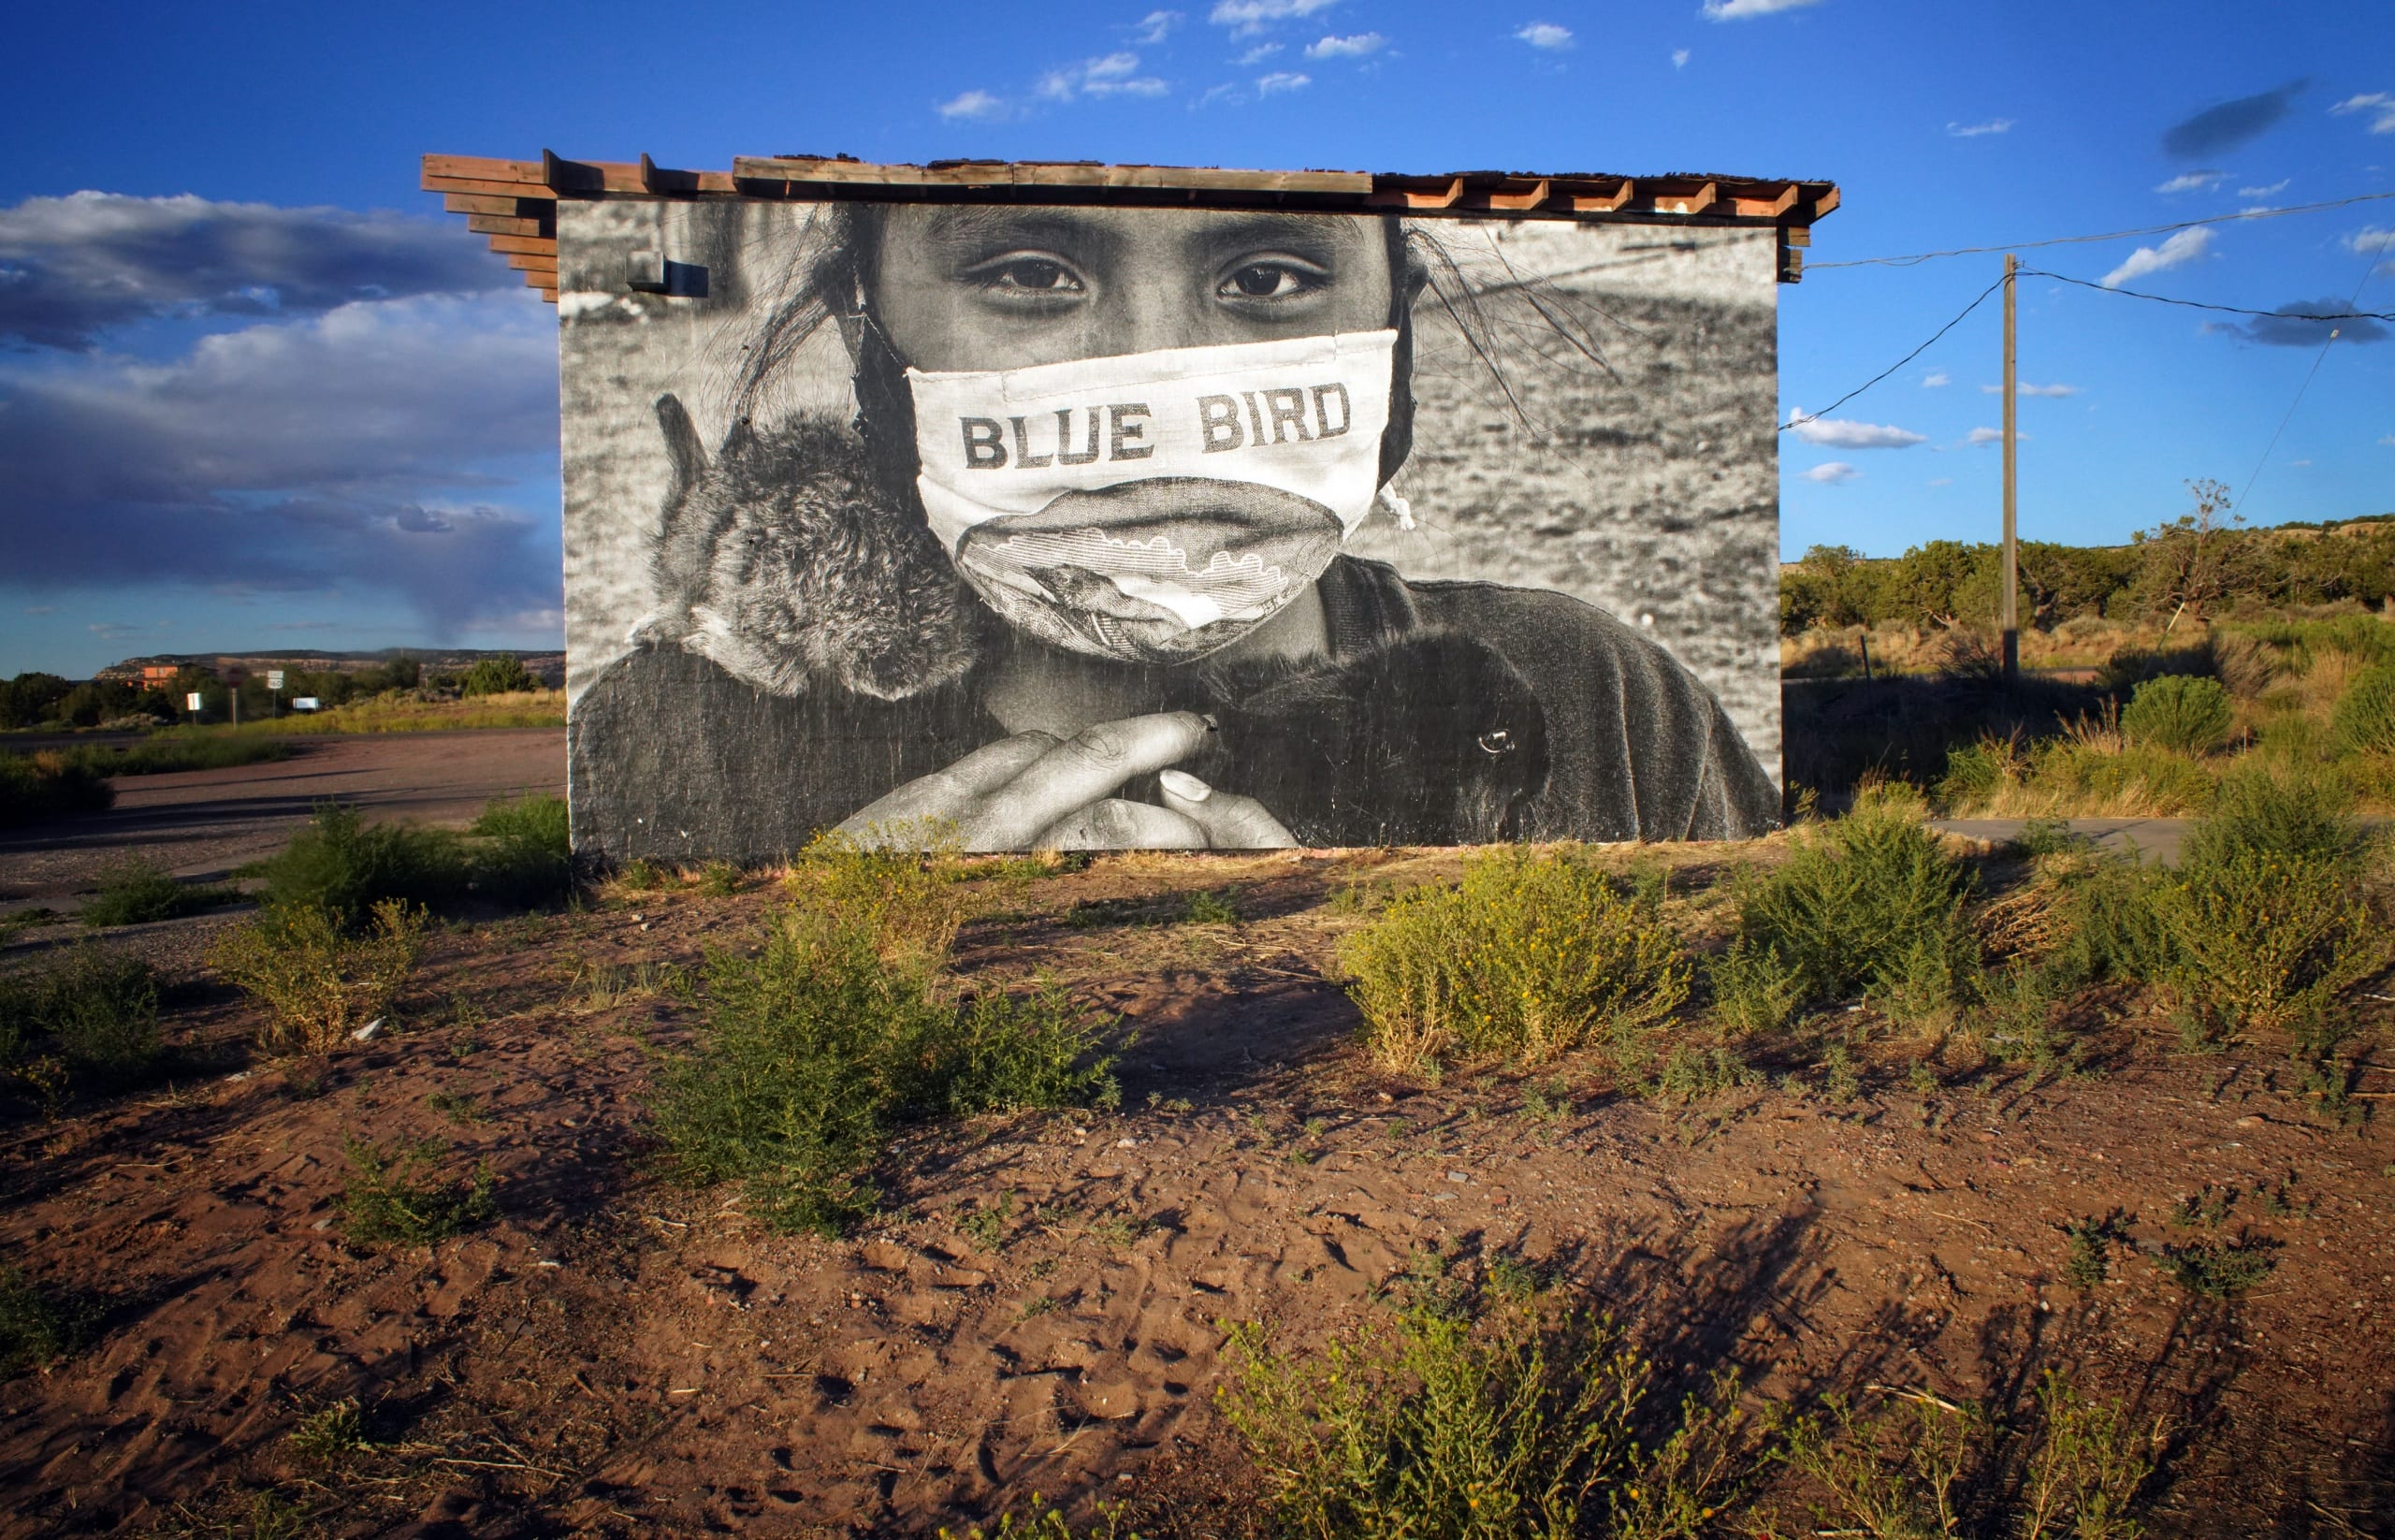 Color photograph shows a lush desert landscape with a bright blue sky. In the center of the image is a building wrapped in a photographic mural of a young girl, wearing a face mask and looking straight out at the veiwer, holding a small bunny